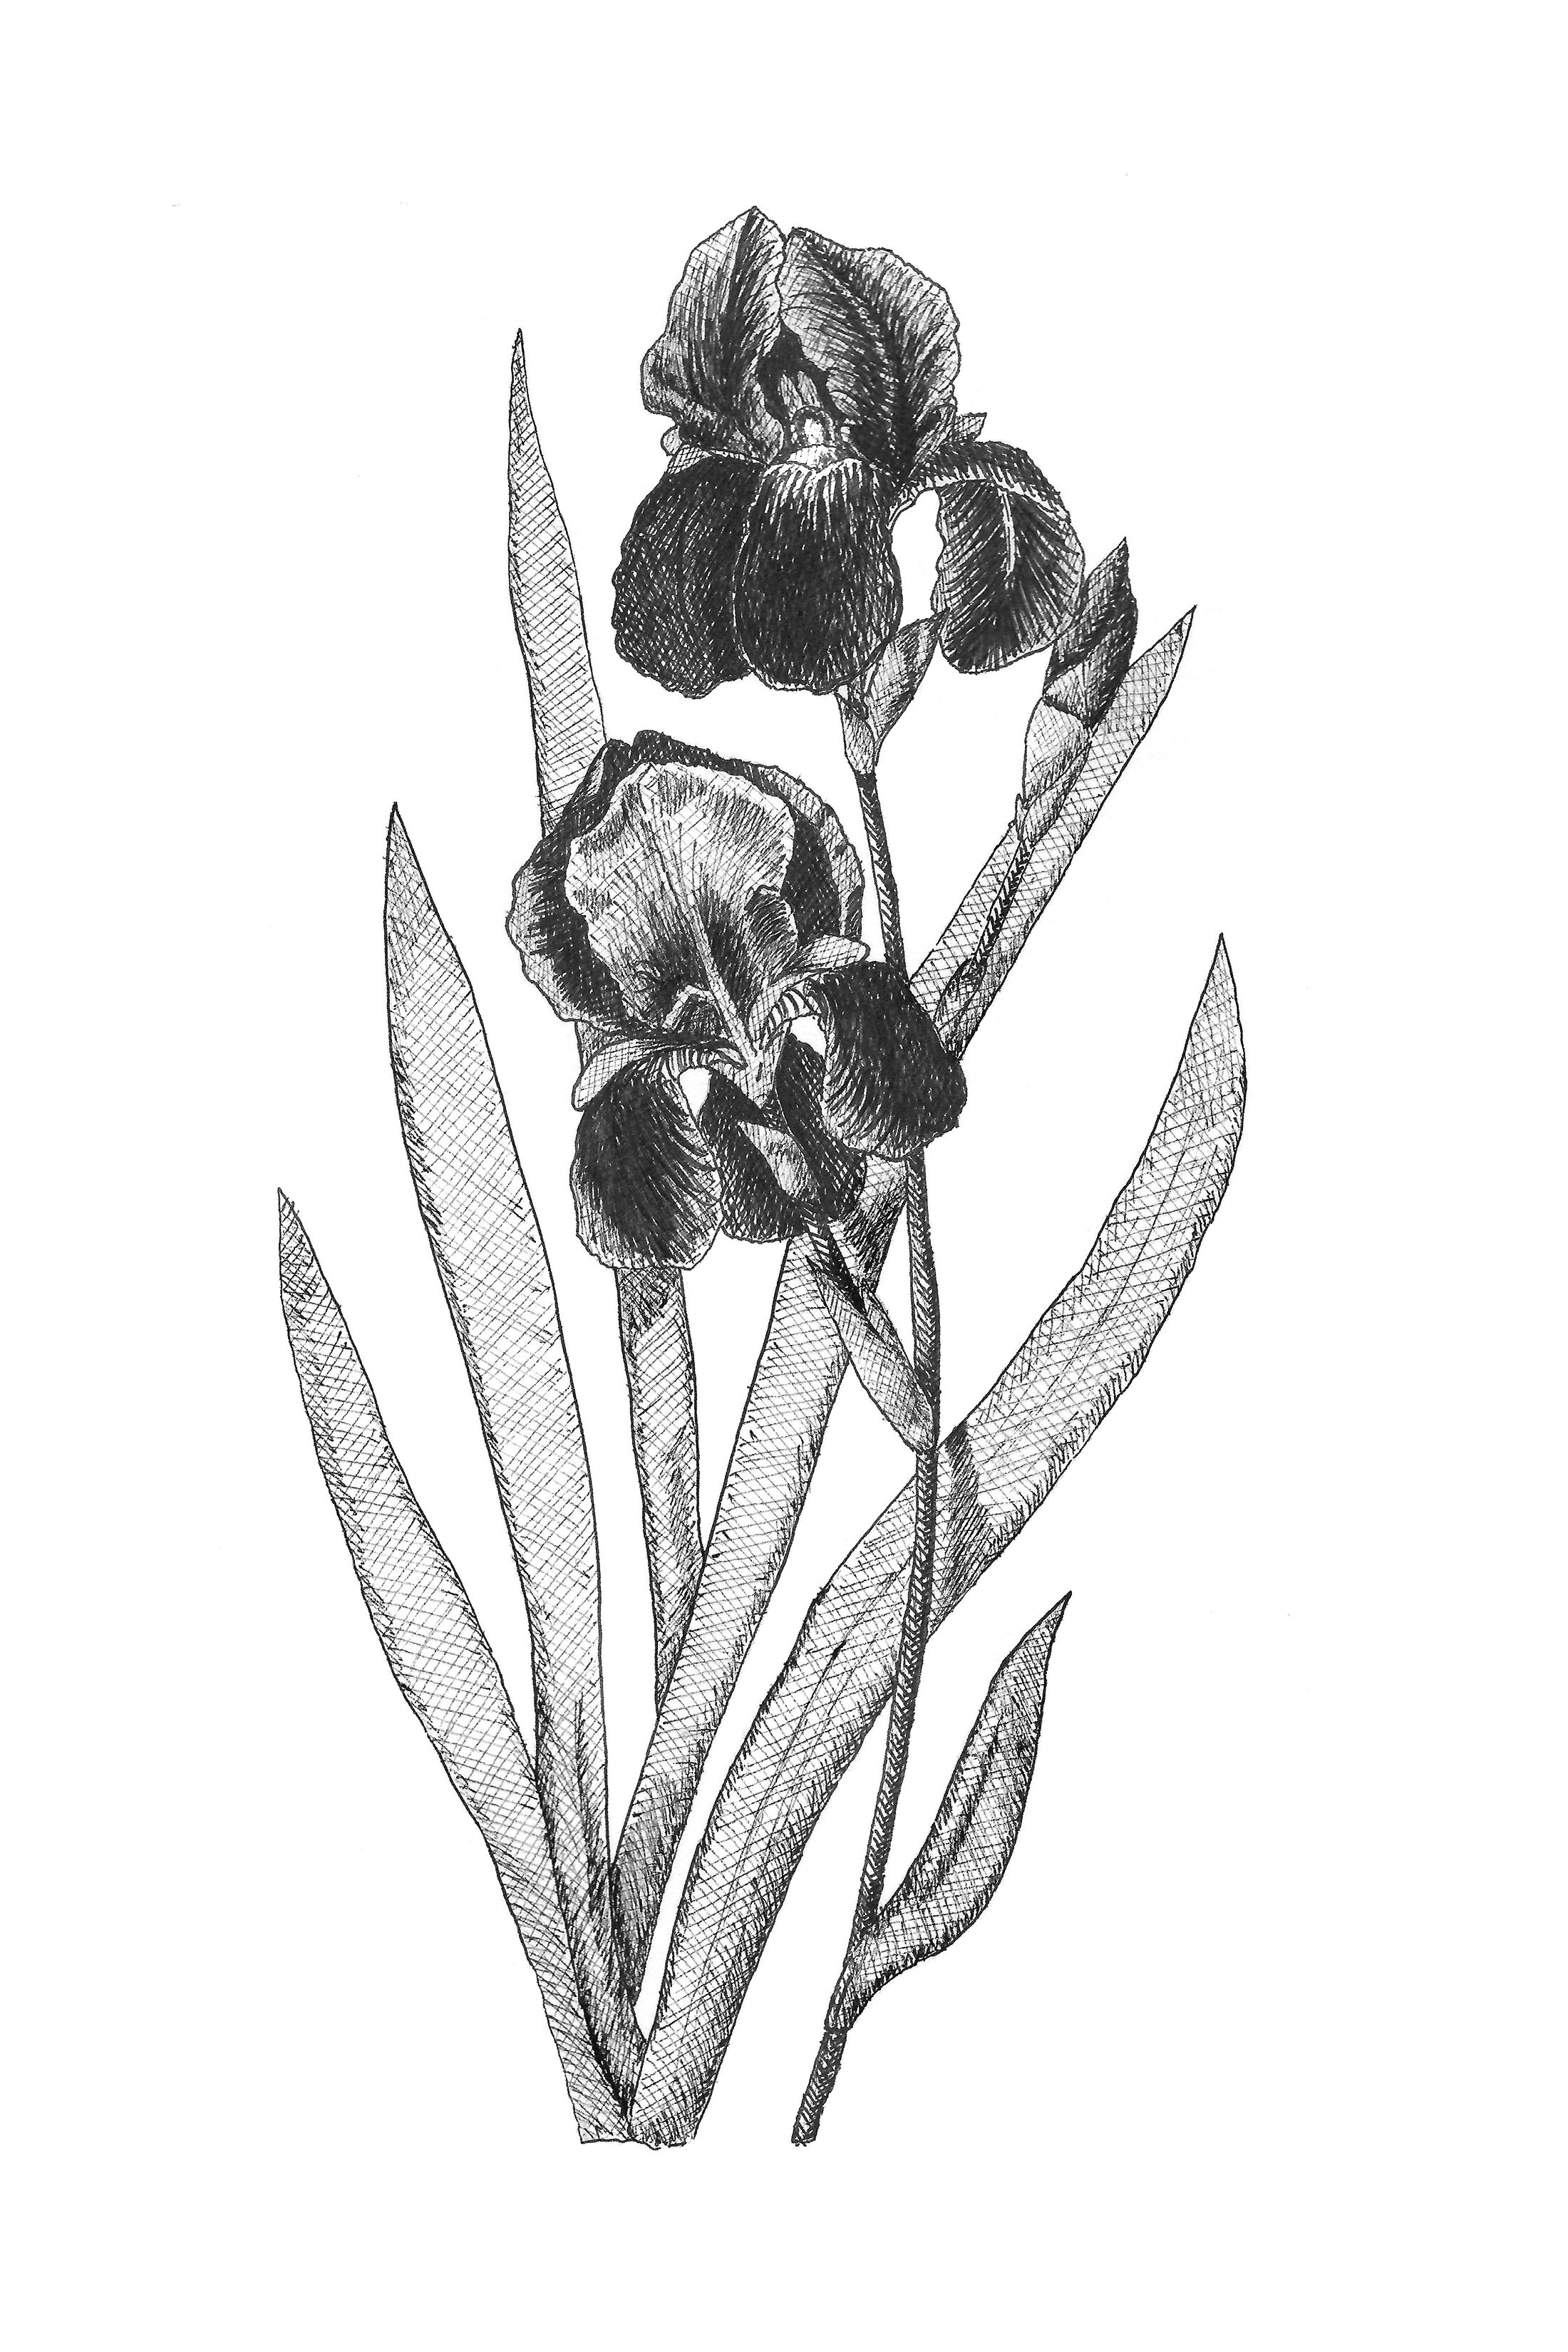 Iris Botanical Illustration Botanical Wall Art Black And White Bluebonnet Printable Tennessee State Flower In 2020 Botanical Illustration Botanical Wall Art Illustration